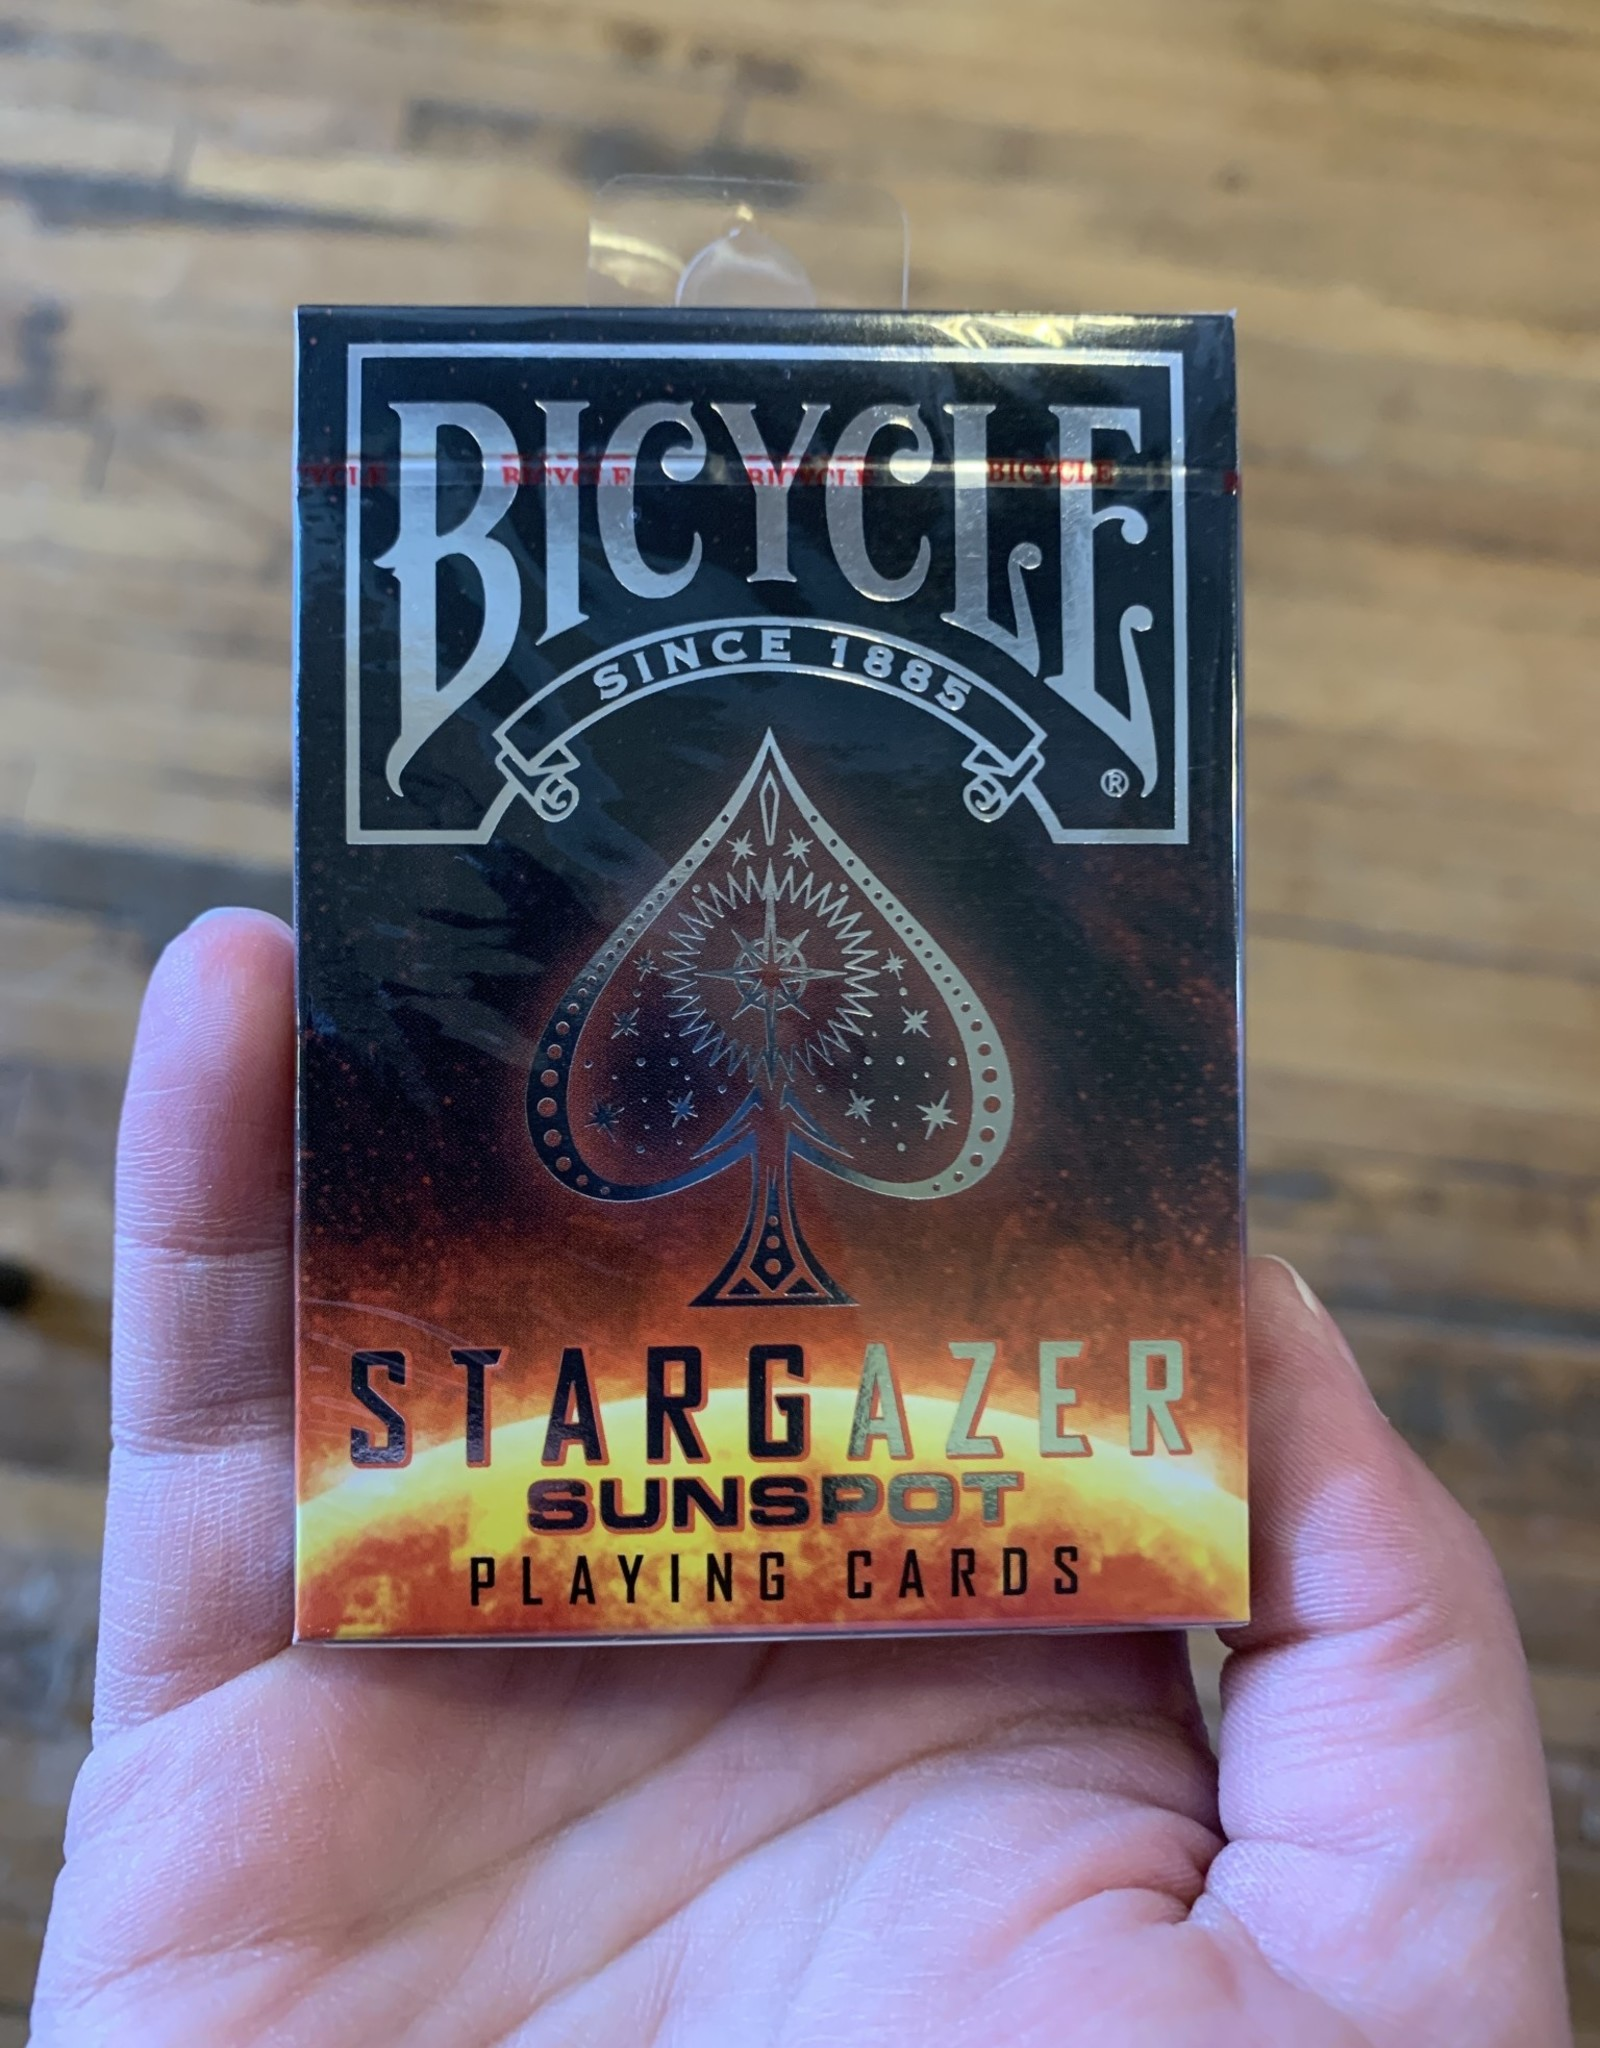 Bicycle Bicycle Stargazer Sunspot Playing Cards